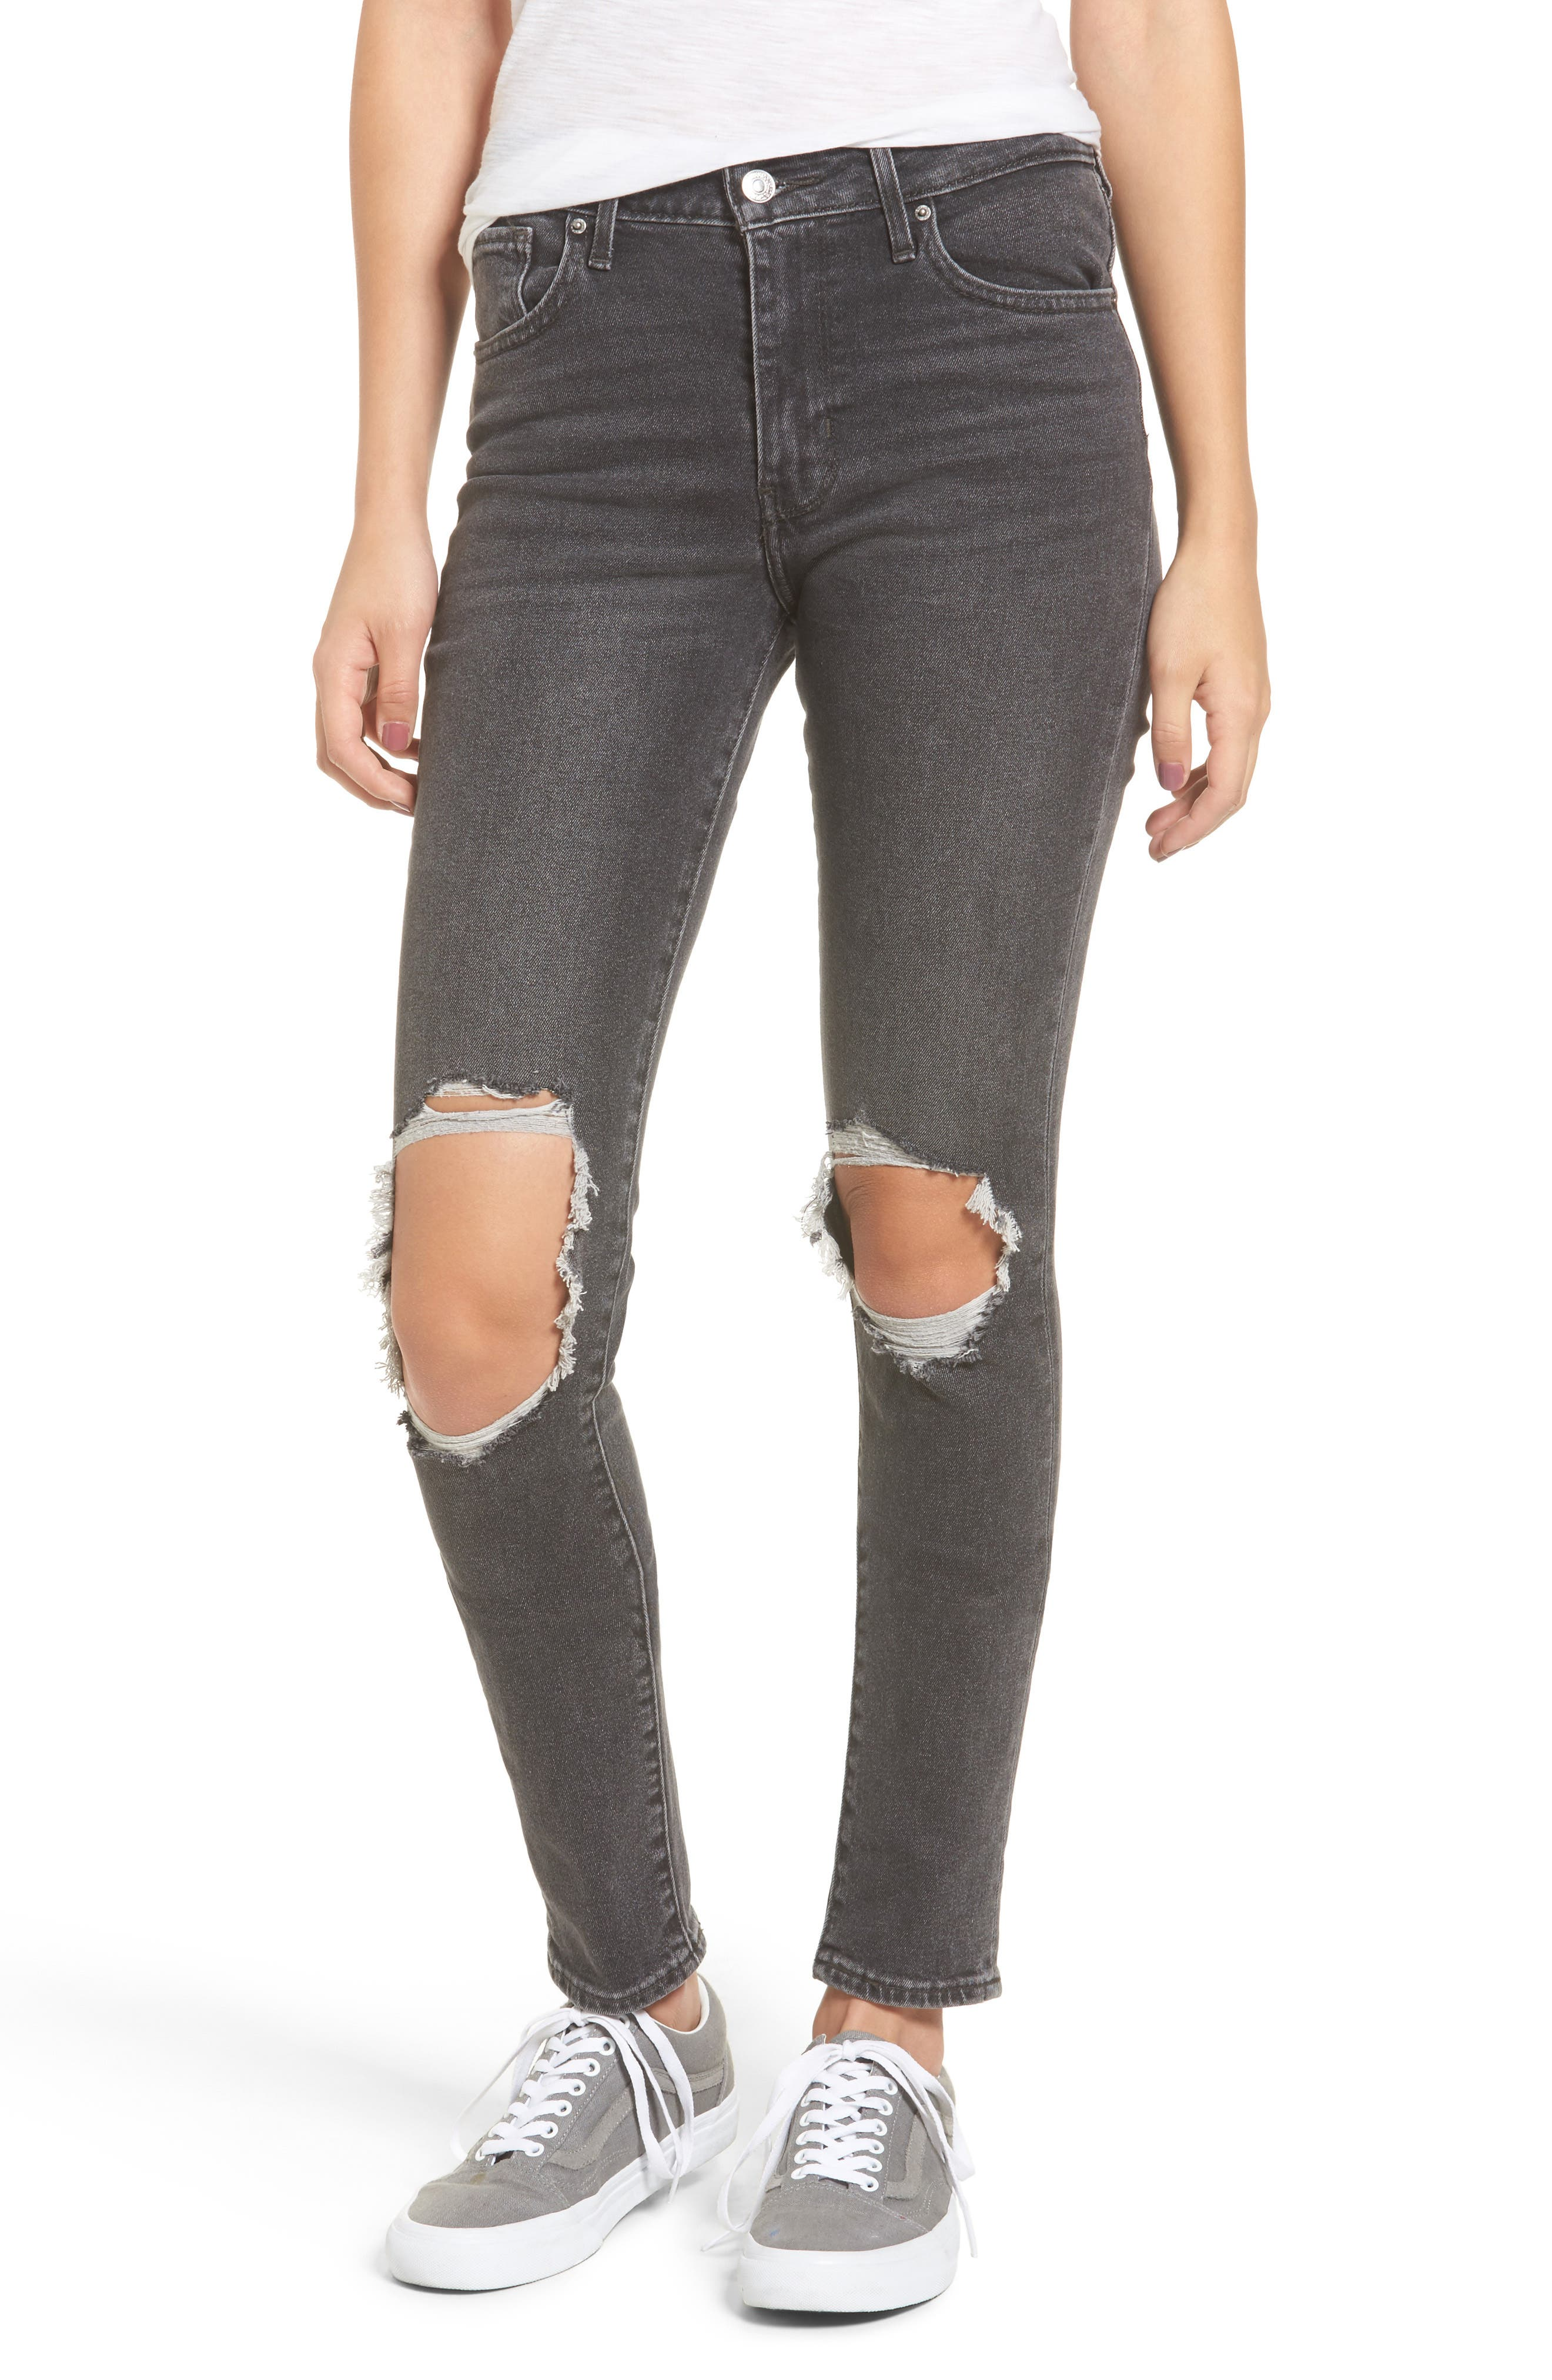 Main Image - Levi's® 721 Ripped High Waist Skinny Jeans (Rugged Black)